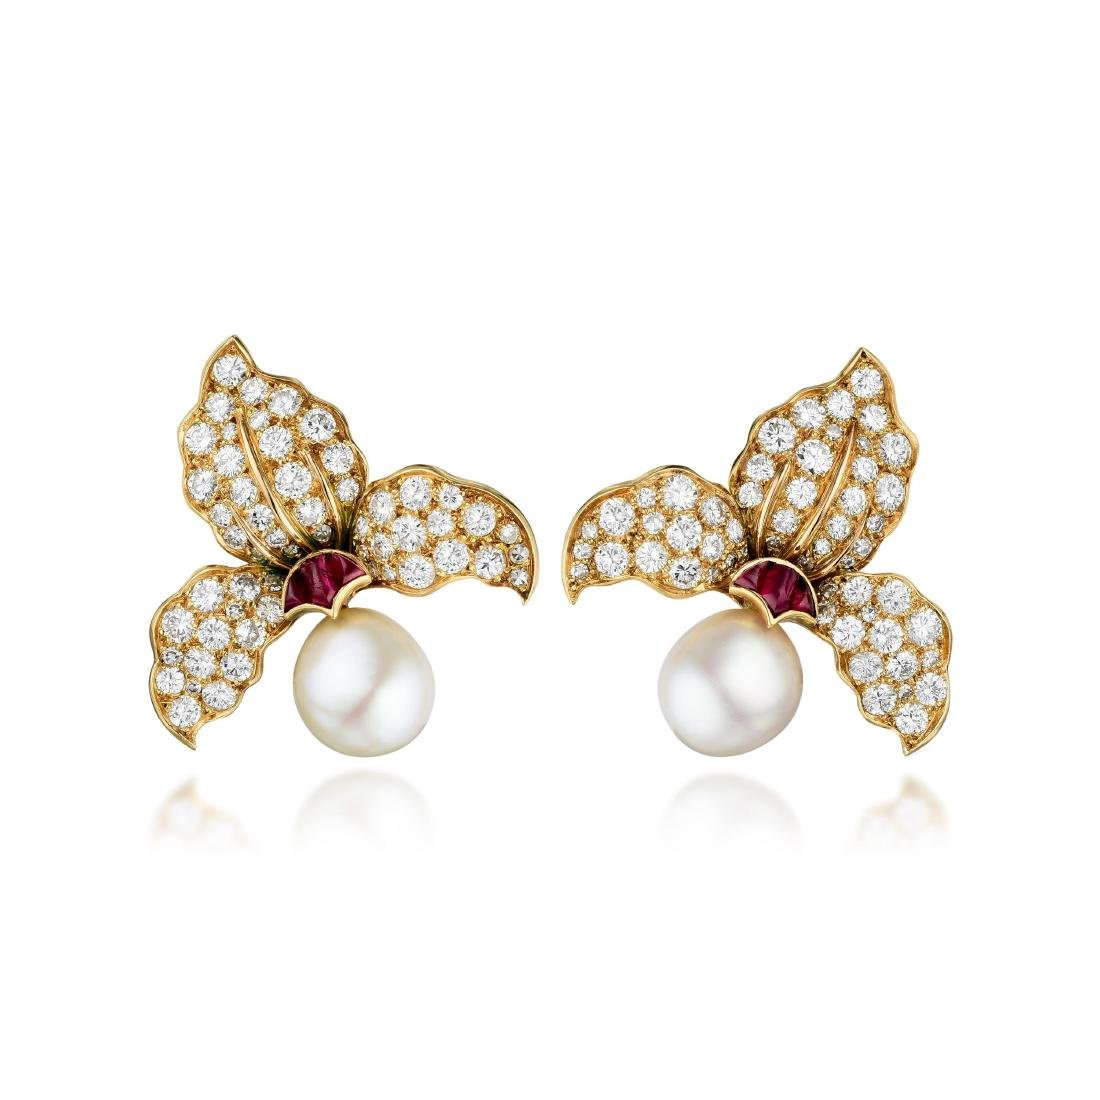 A Pair of Cultured Pearl Diamond and Ruby Ear Clips,